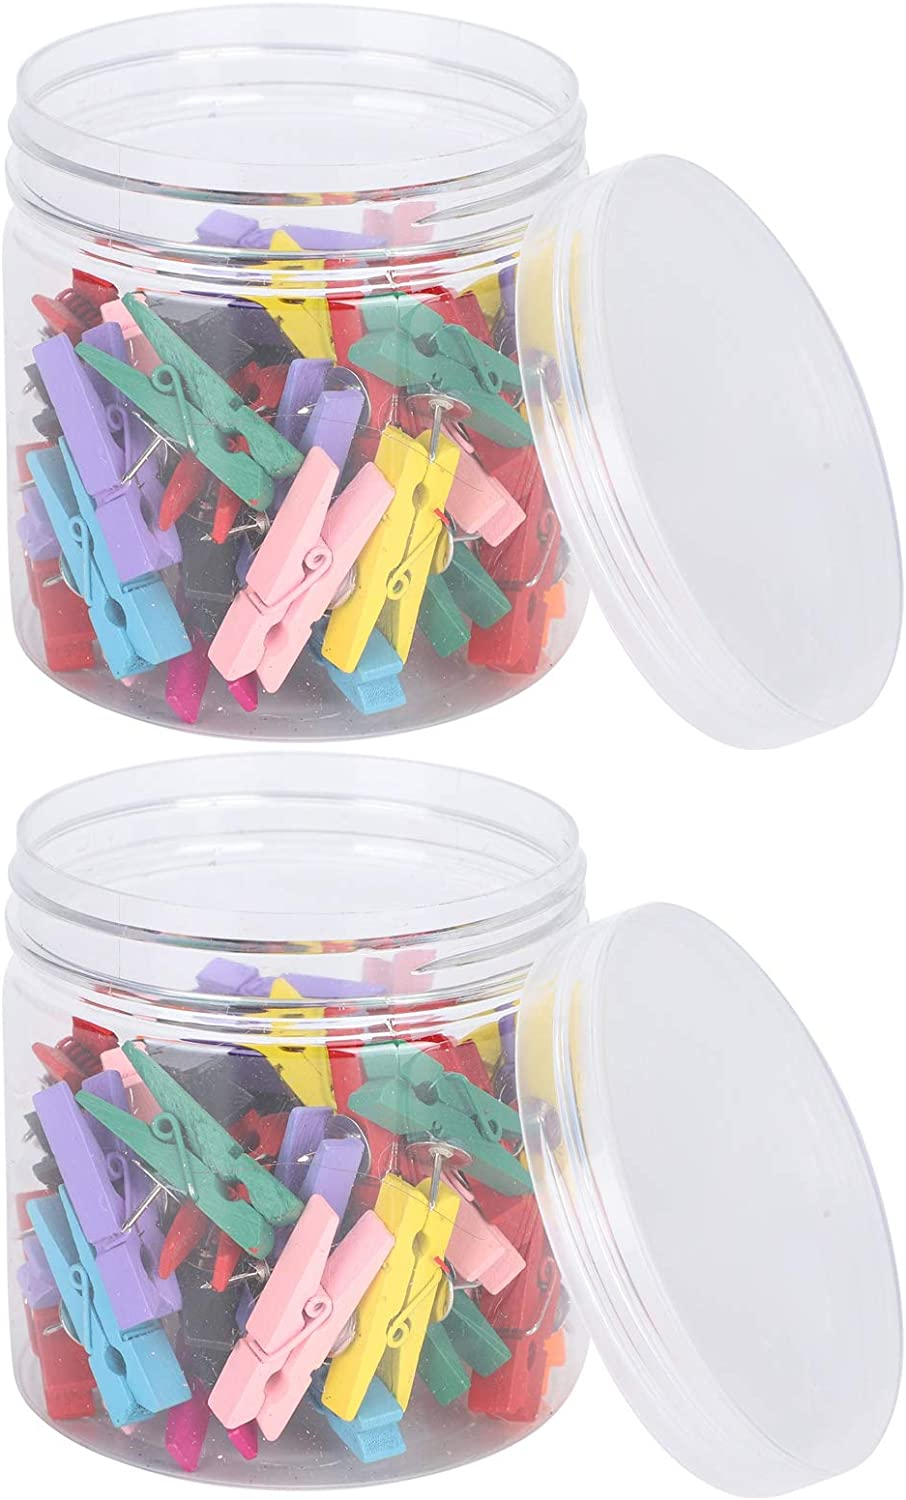 Picture Clips 100pcs Small Push Max 47% OFF Stainless Steel Sprin Pins safety